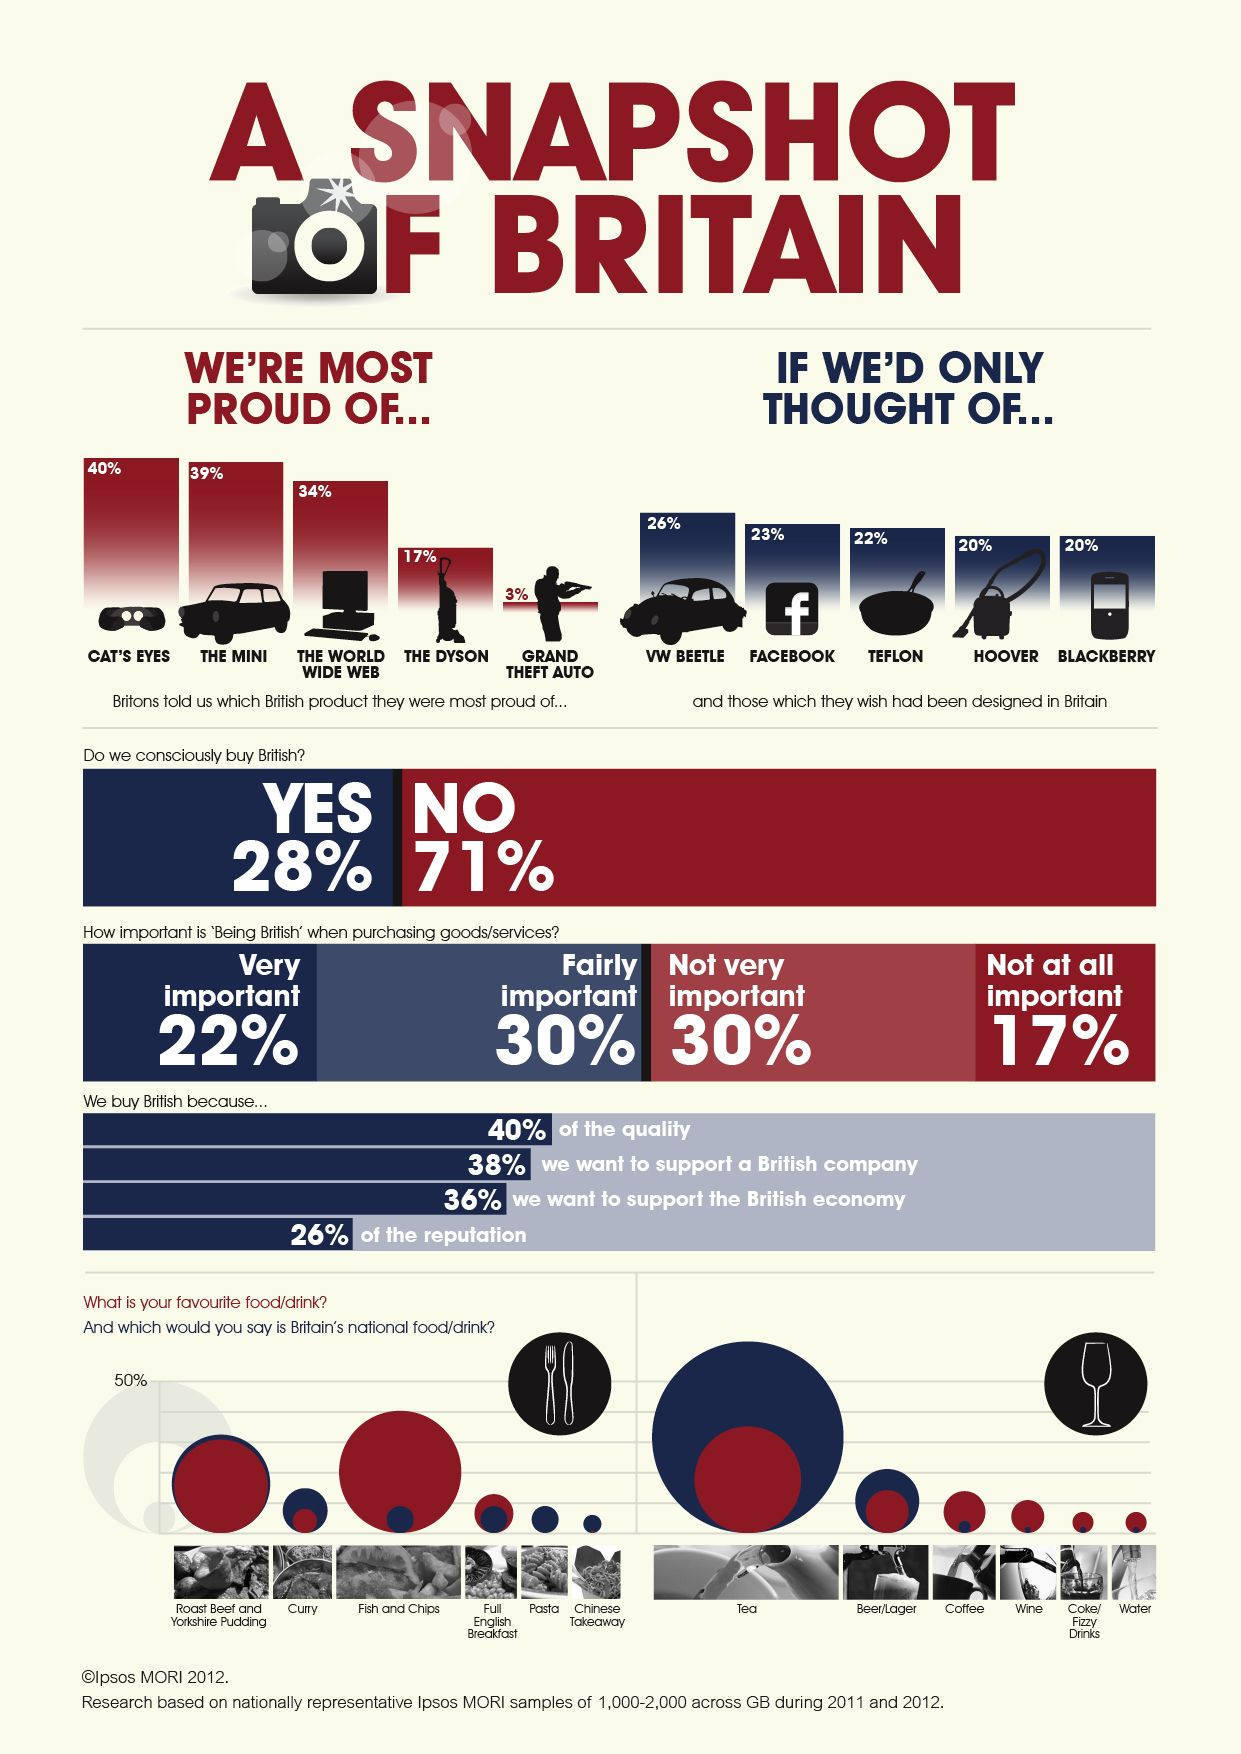 2012 was a fantastic year of celebration for Britain, from